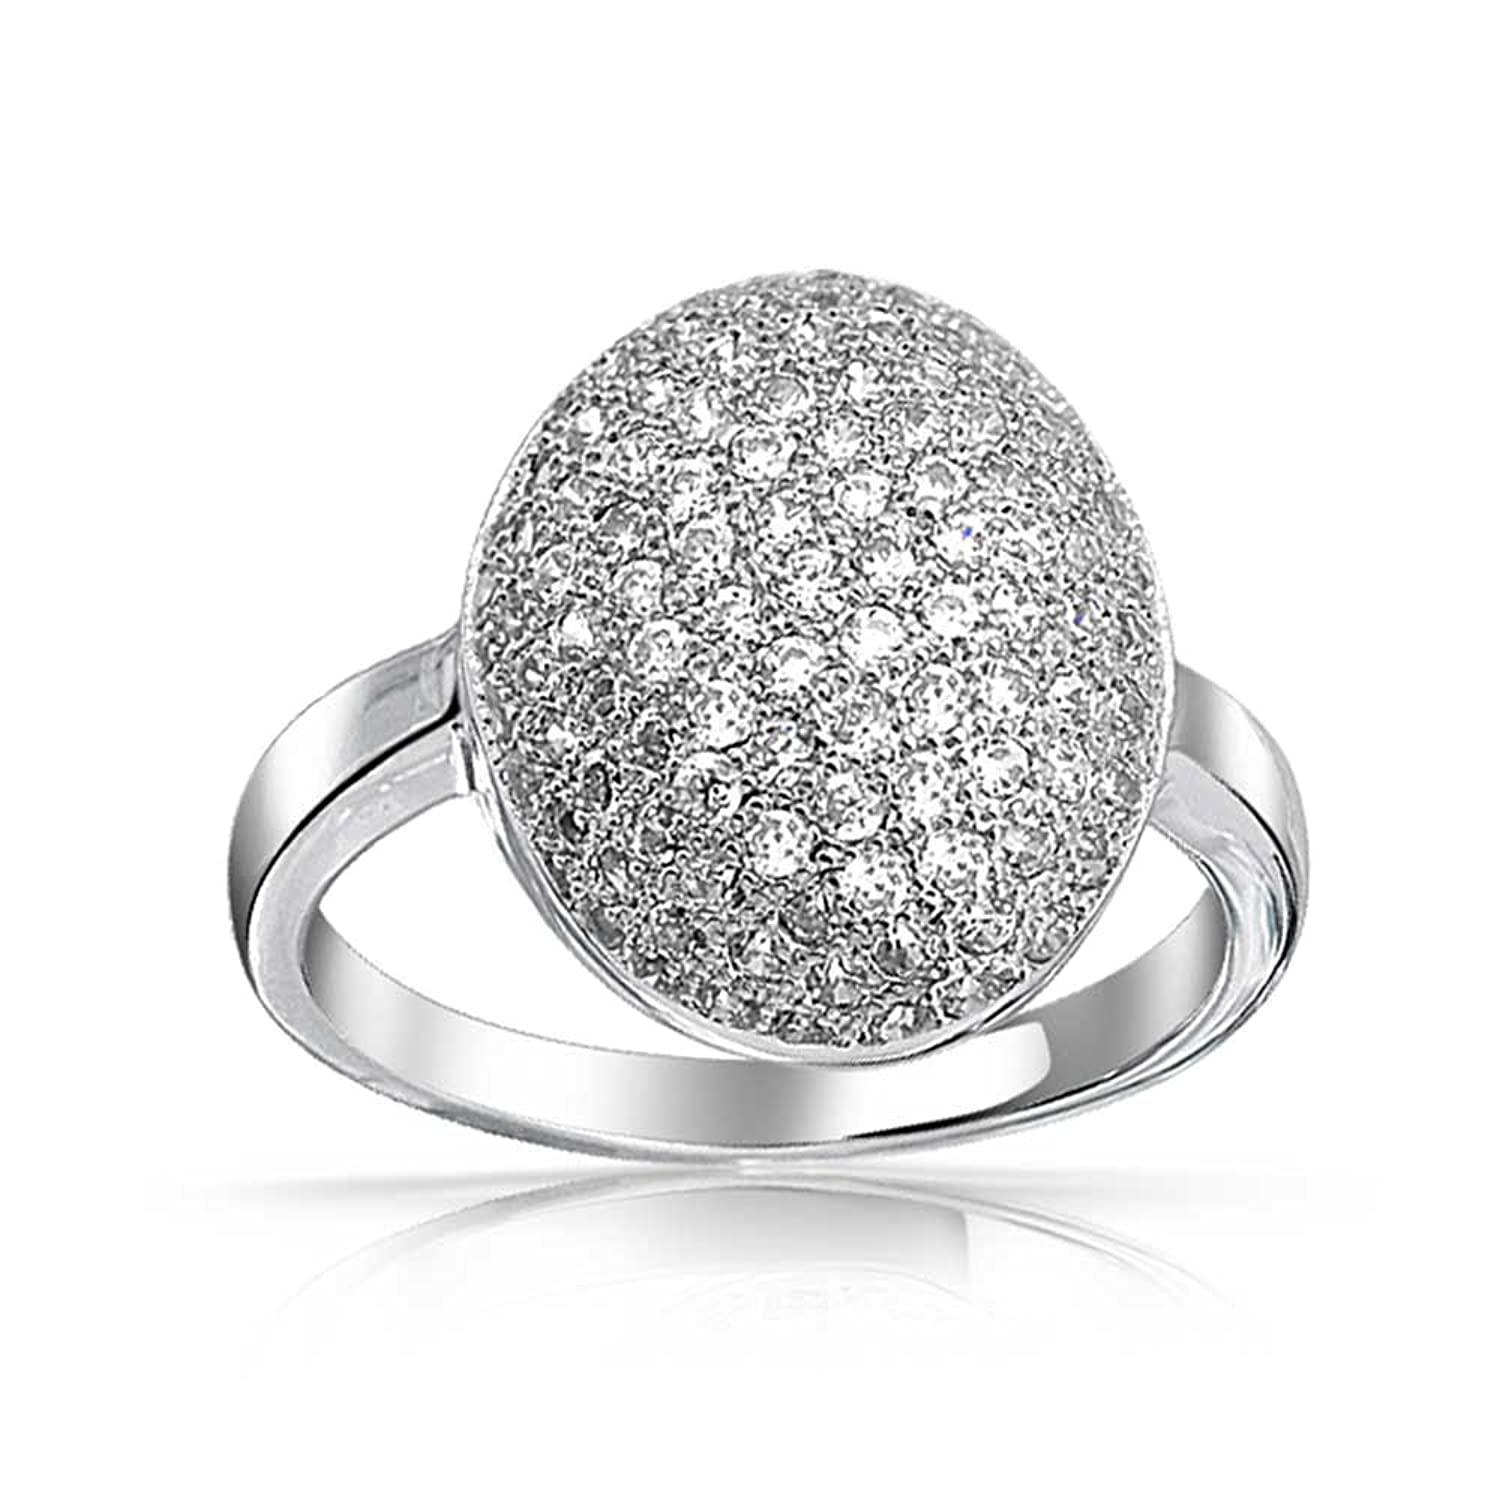 Amazon: Bling Jewelry Pave Oval Cz Sparkle Engagement Ring Rhodium  Plated: Bella S Engagement Ring: Jewelry